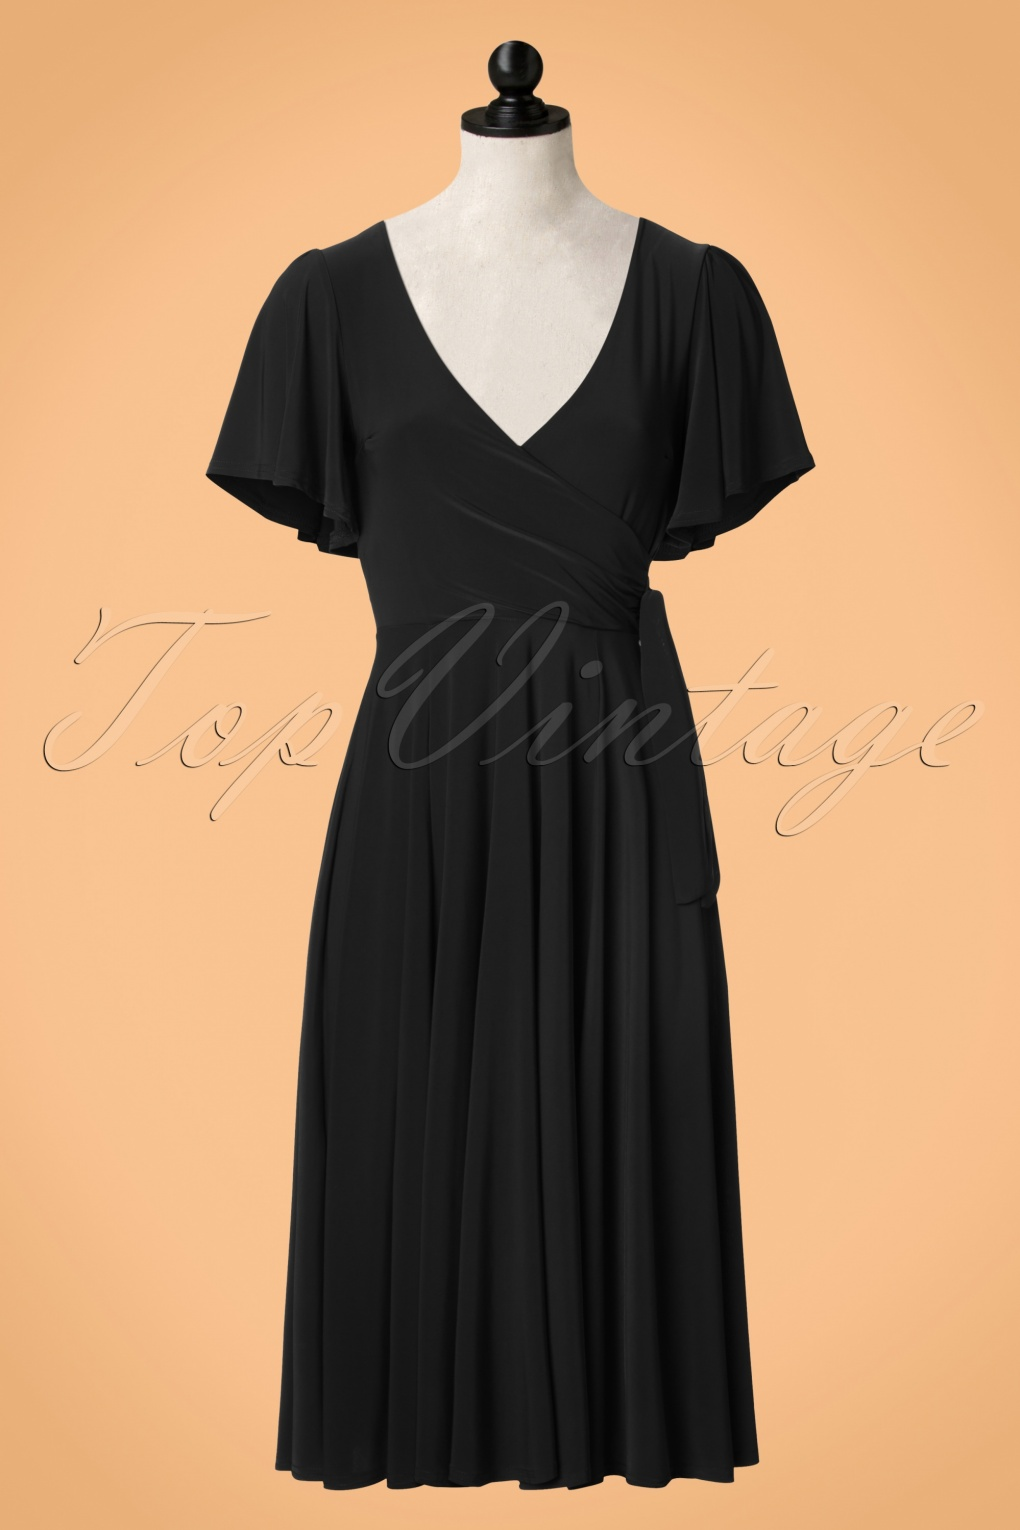 1940s Dresses and Clothing UK 40s Lara Cross Over Swing Dress in Black £54.36 AT vintagedancer.com